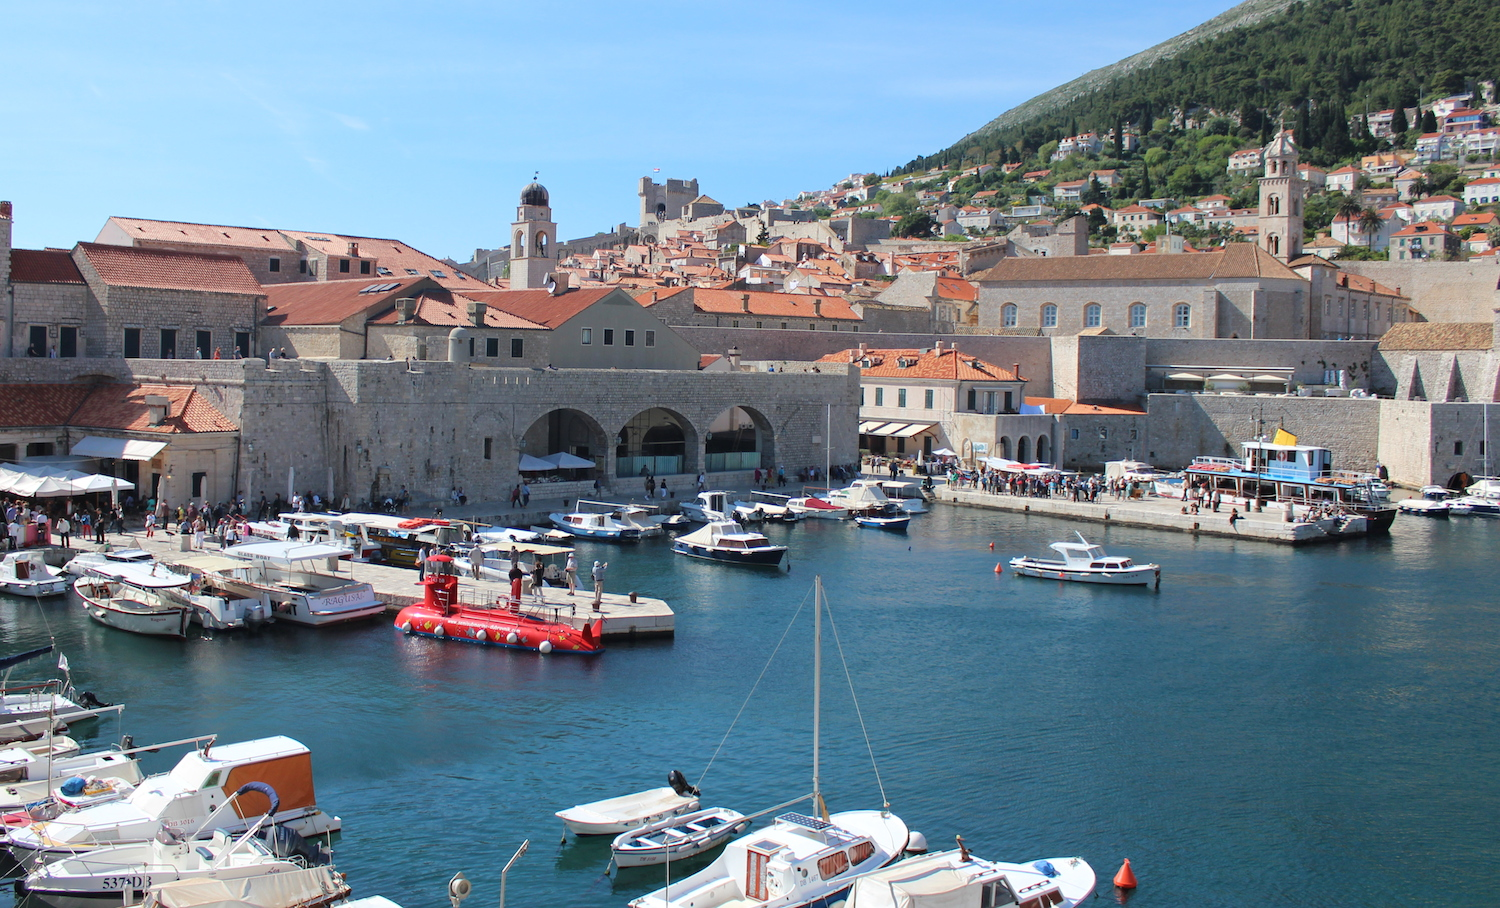 Old town port Dubrovnik